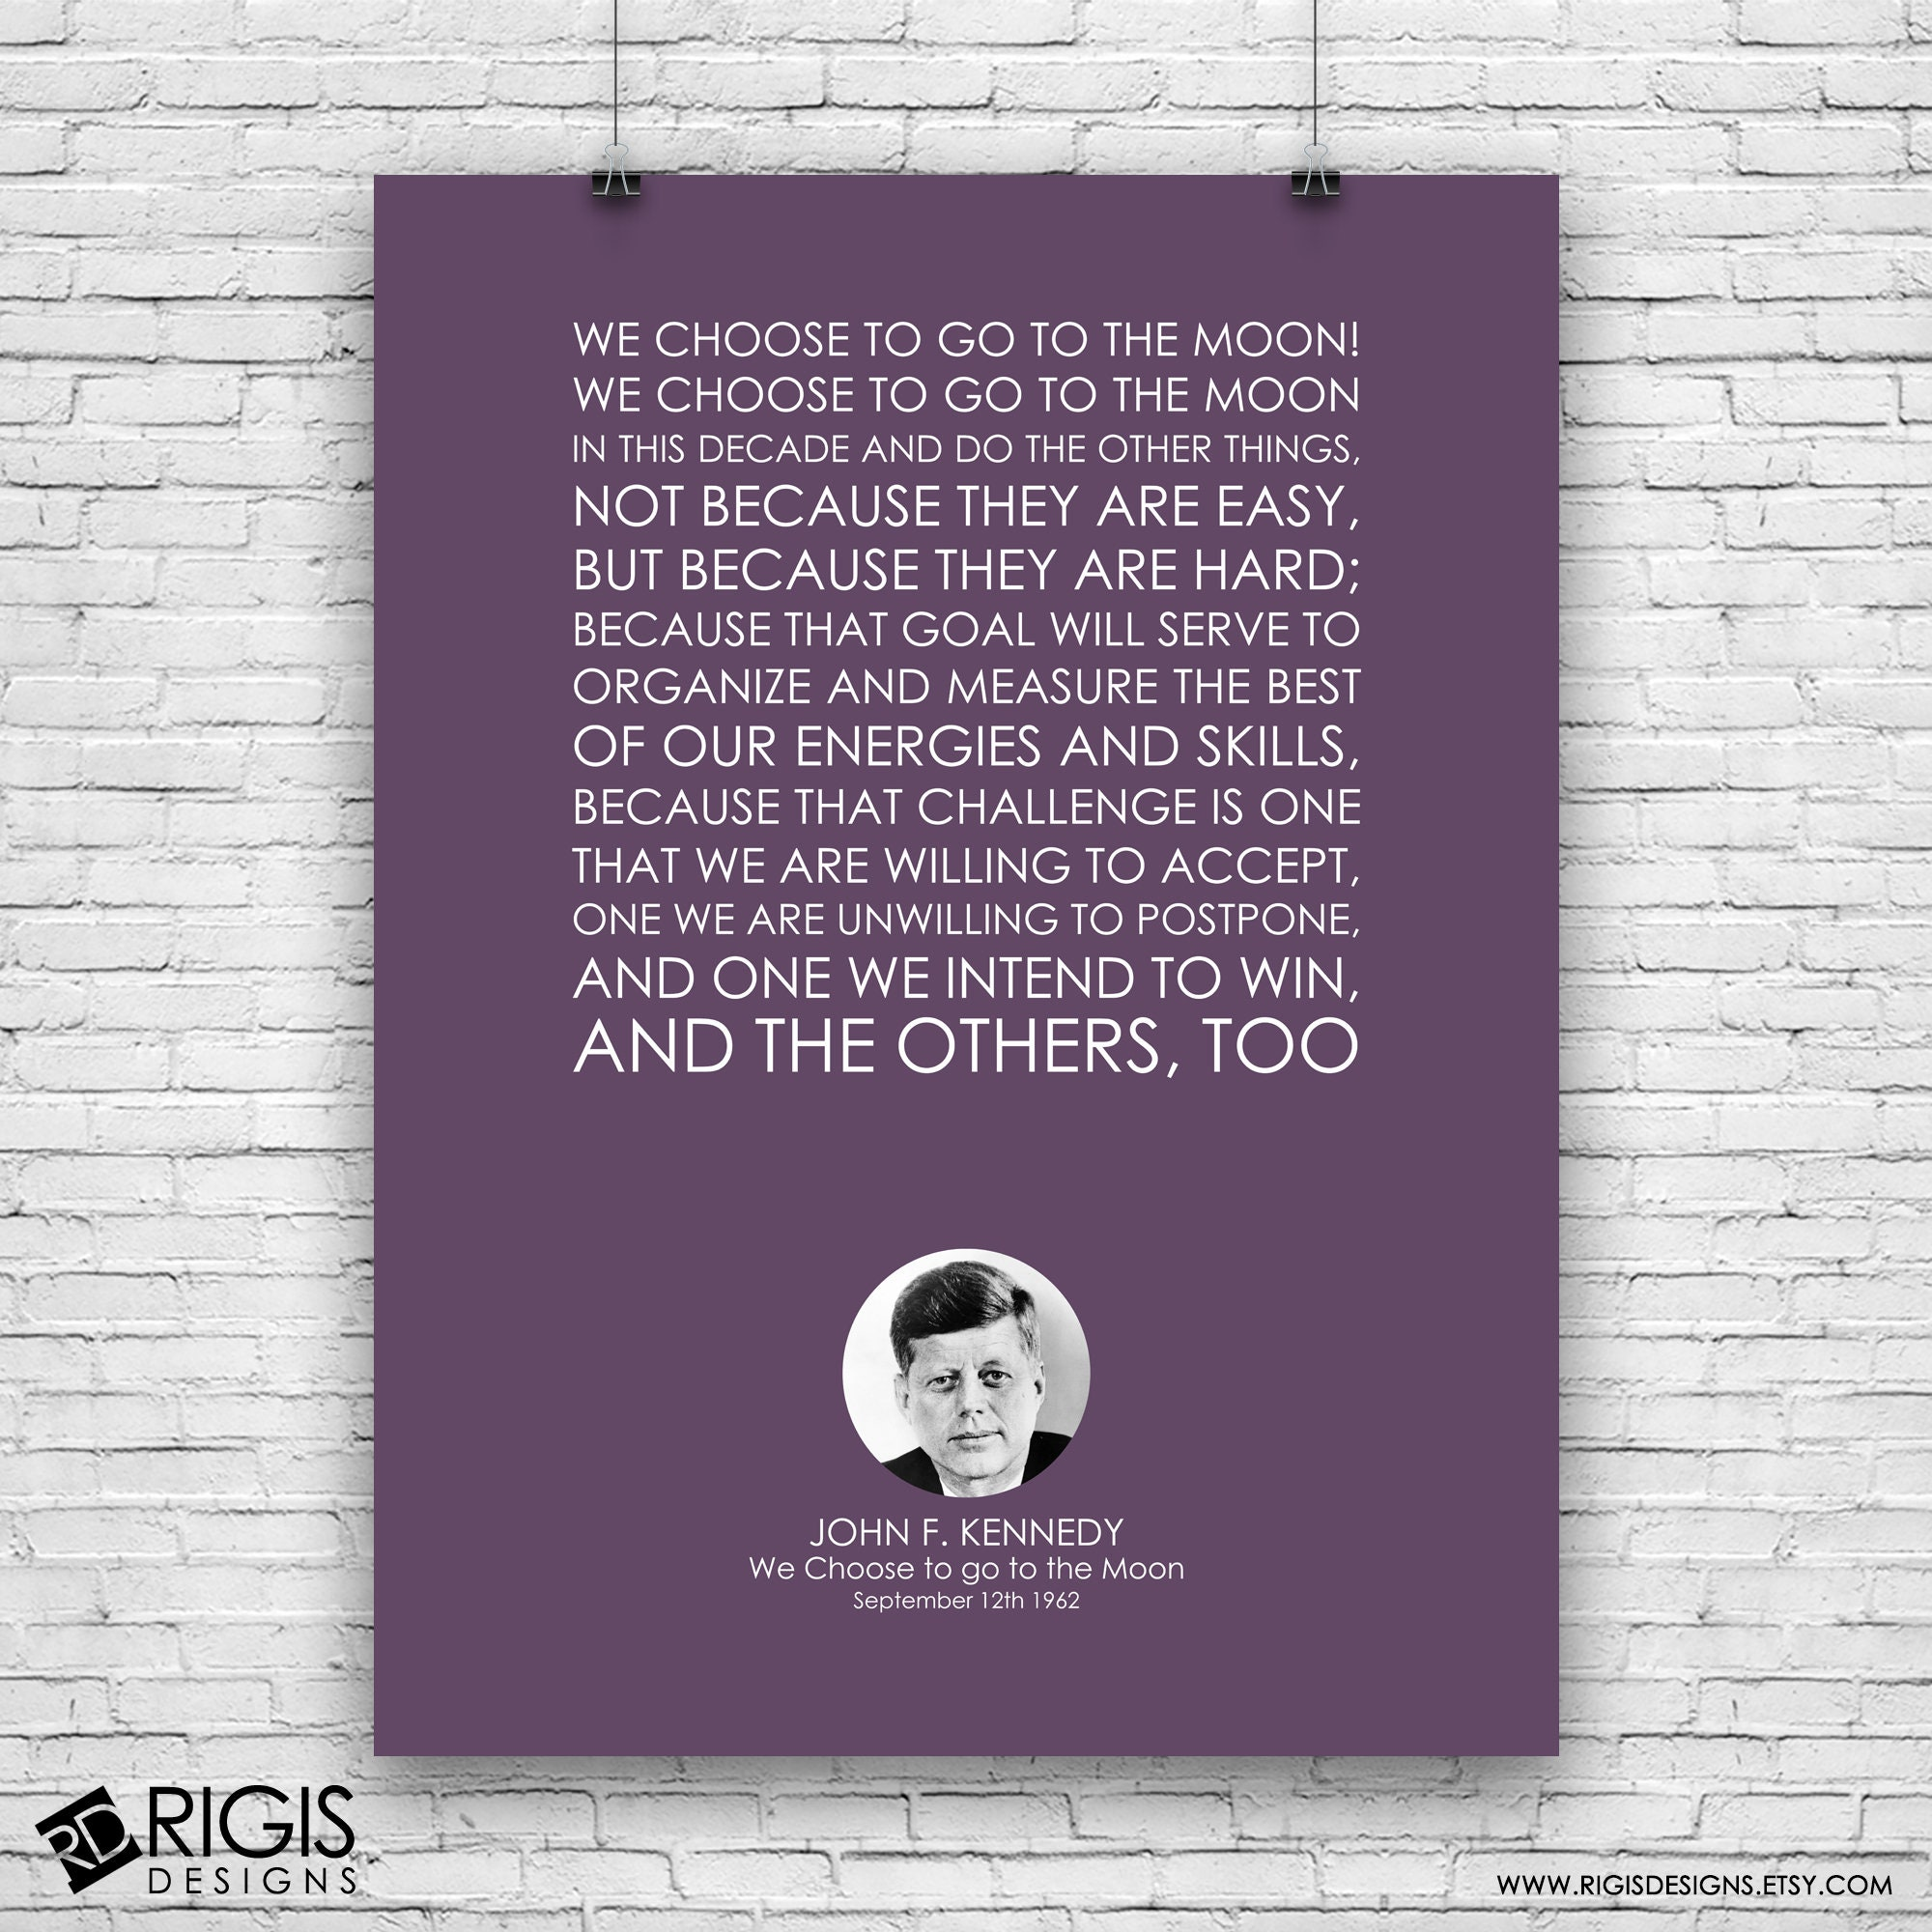 John F. Kennedy, We Choose to go to the Moon Speech